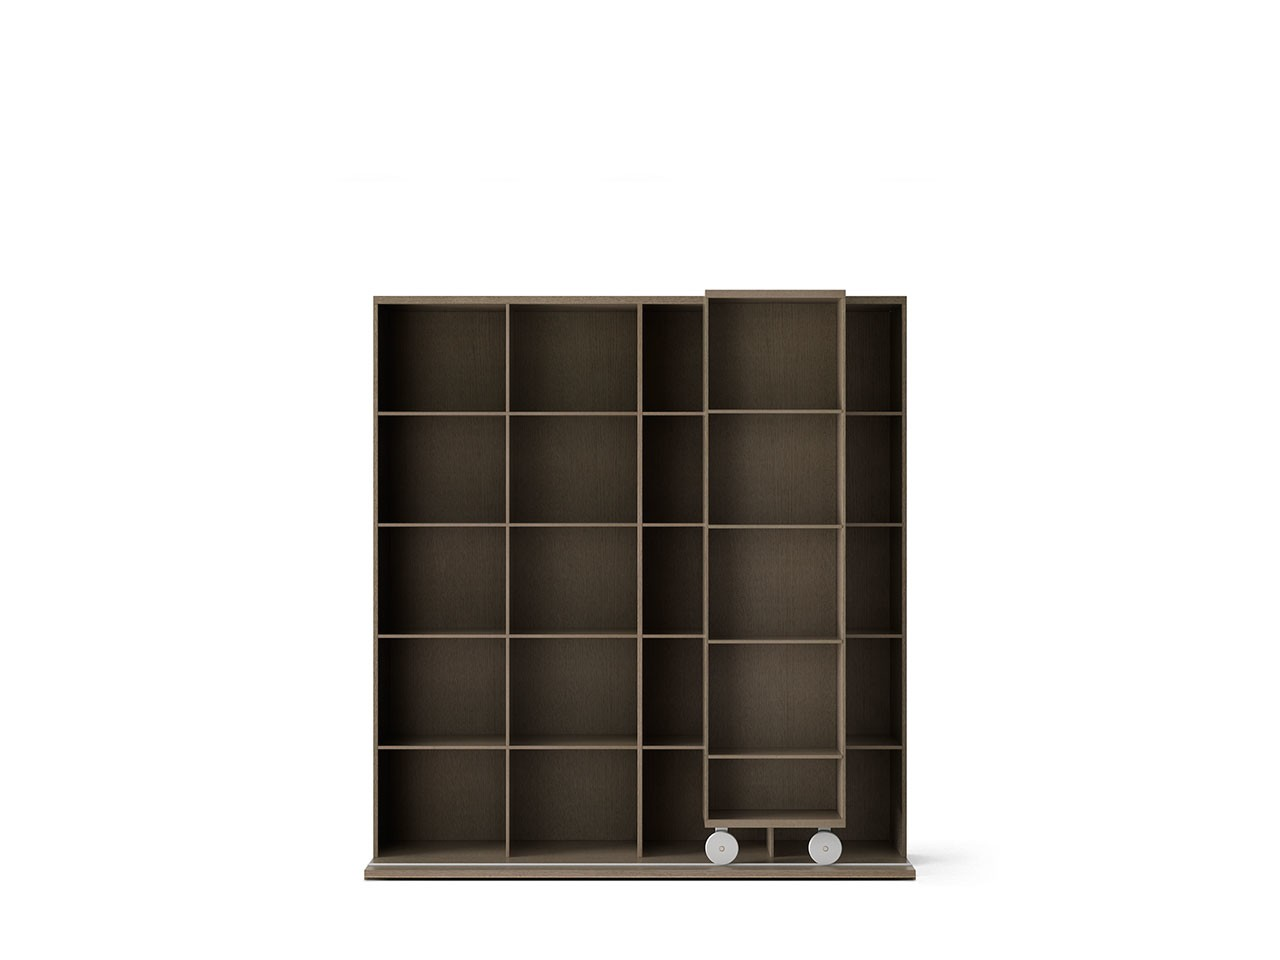 LTL420 Literatura Light Bookcase Siena Grey Stained Oak, Siena Grey Stained Oak